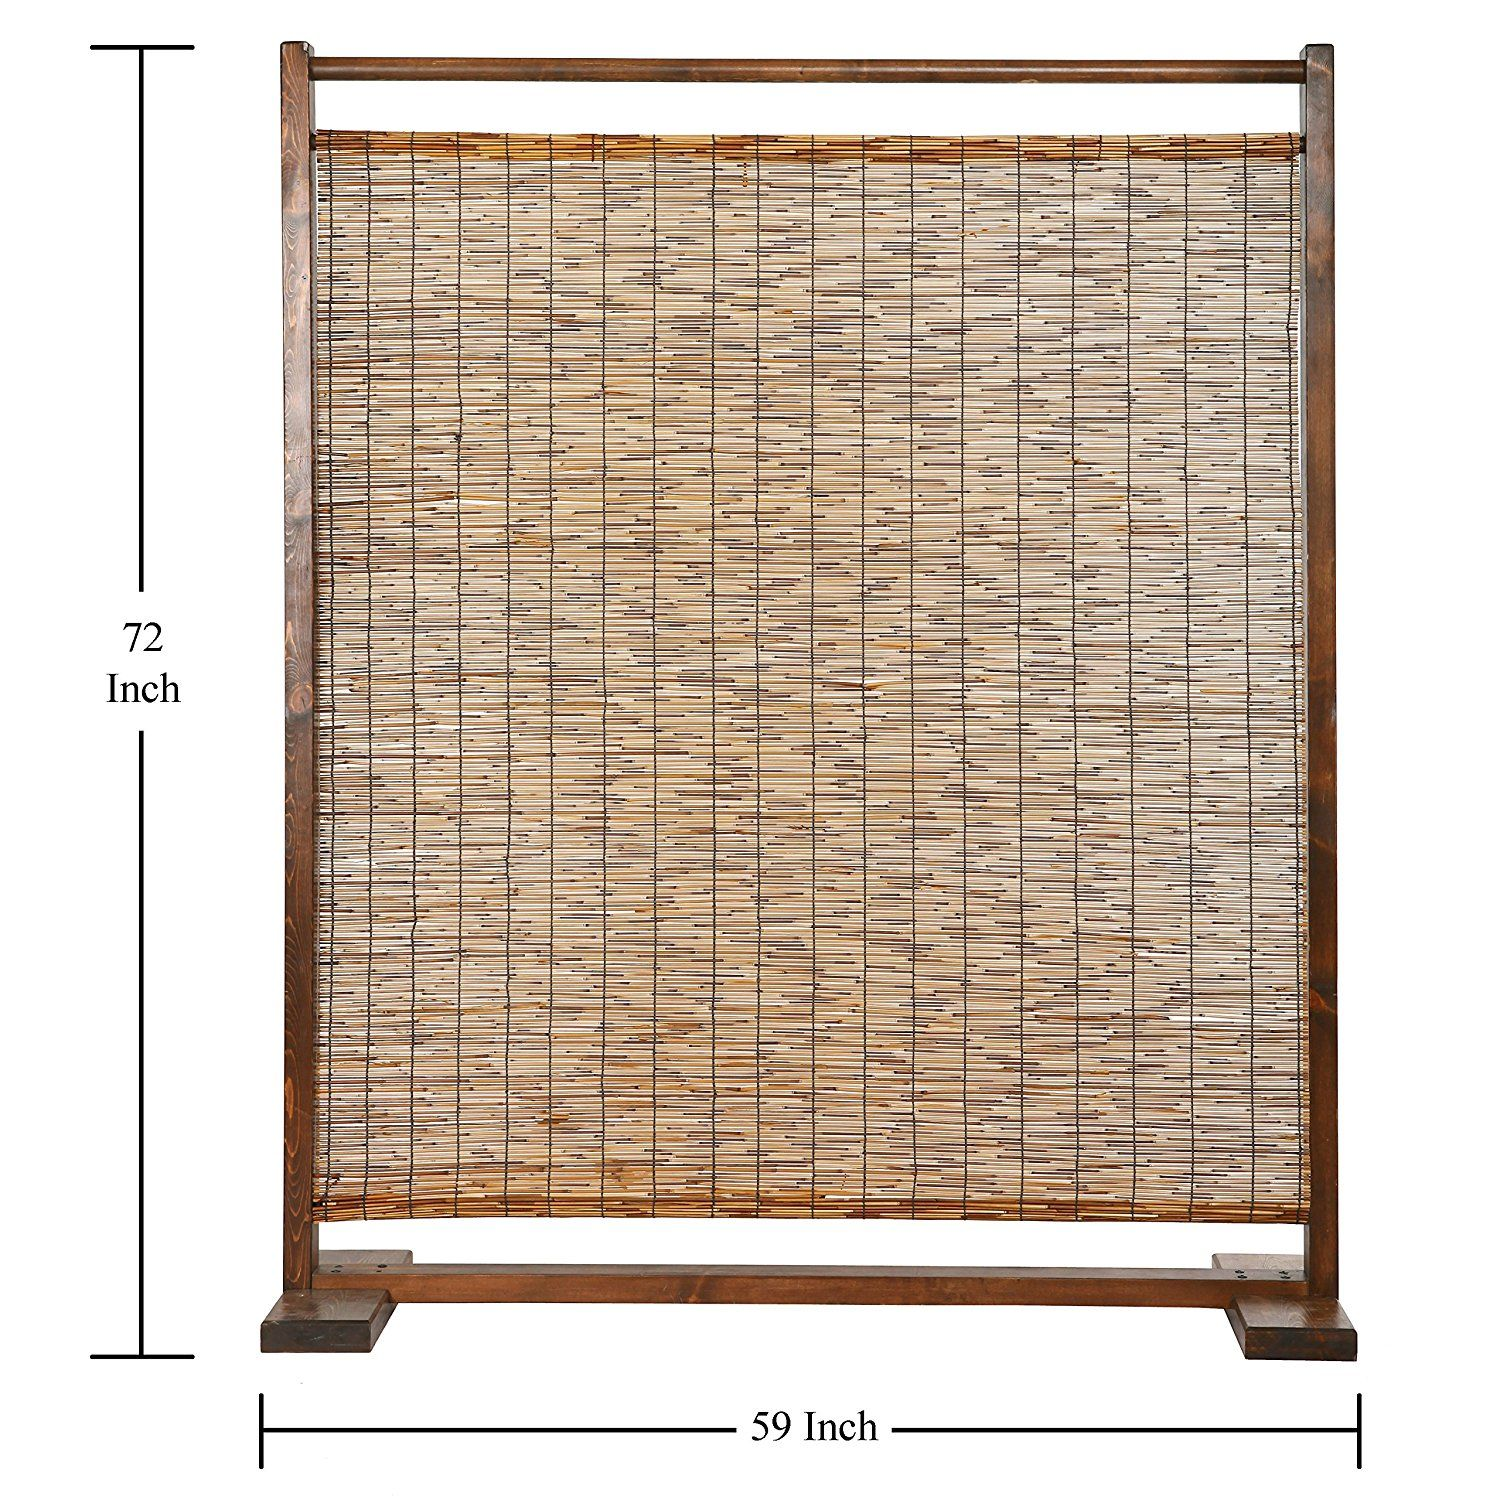 Amazon Com Freestanding Rustic Style Wood Reed Single Panel Room Divider Brown Kitchen Dining Room Divider Screen Room Divider Rustic Black